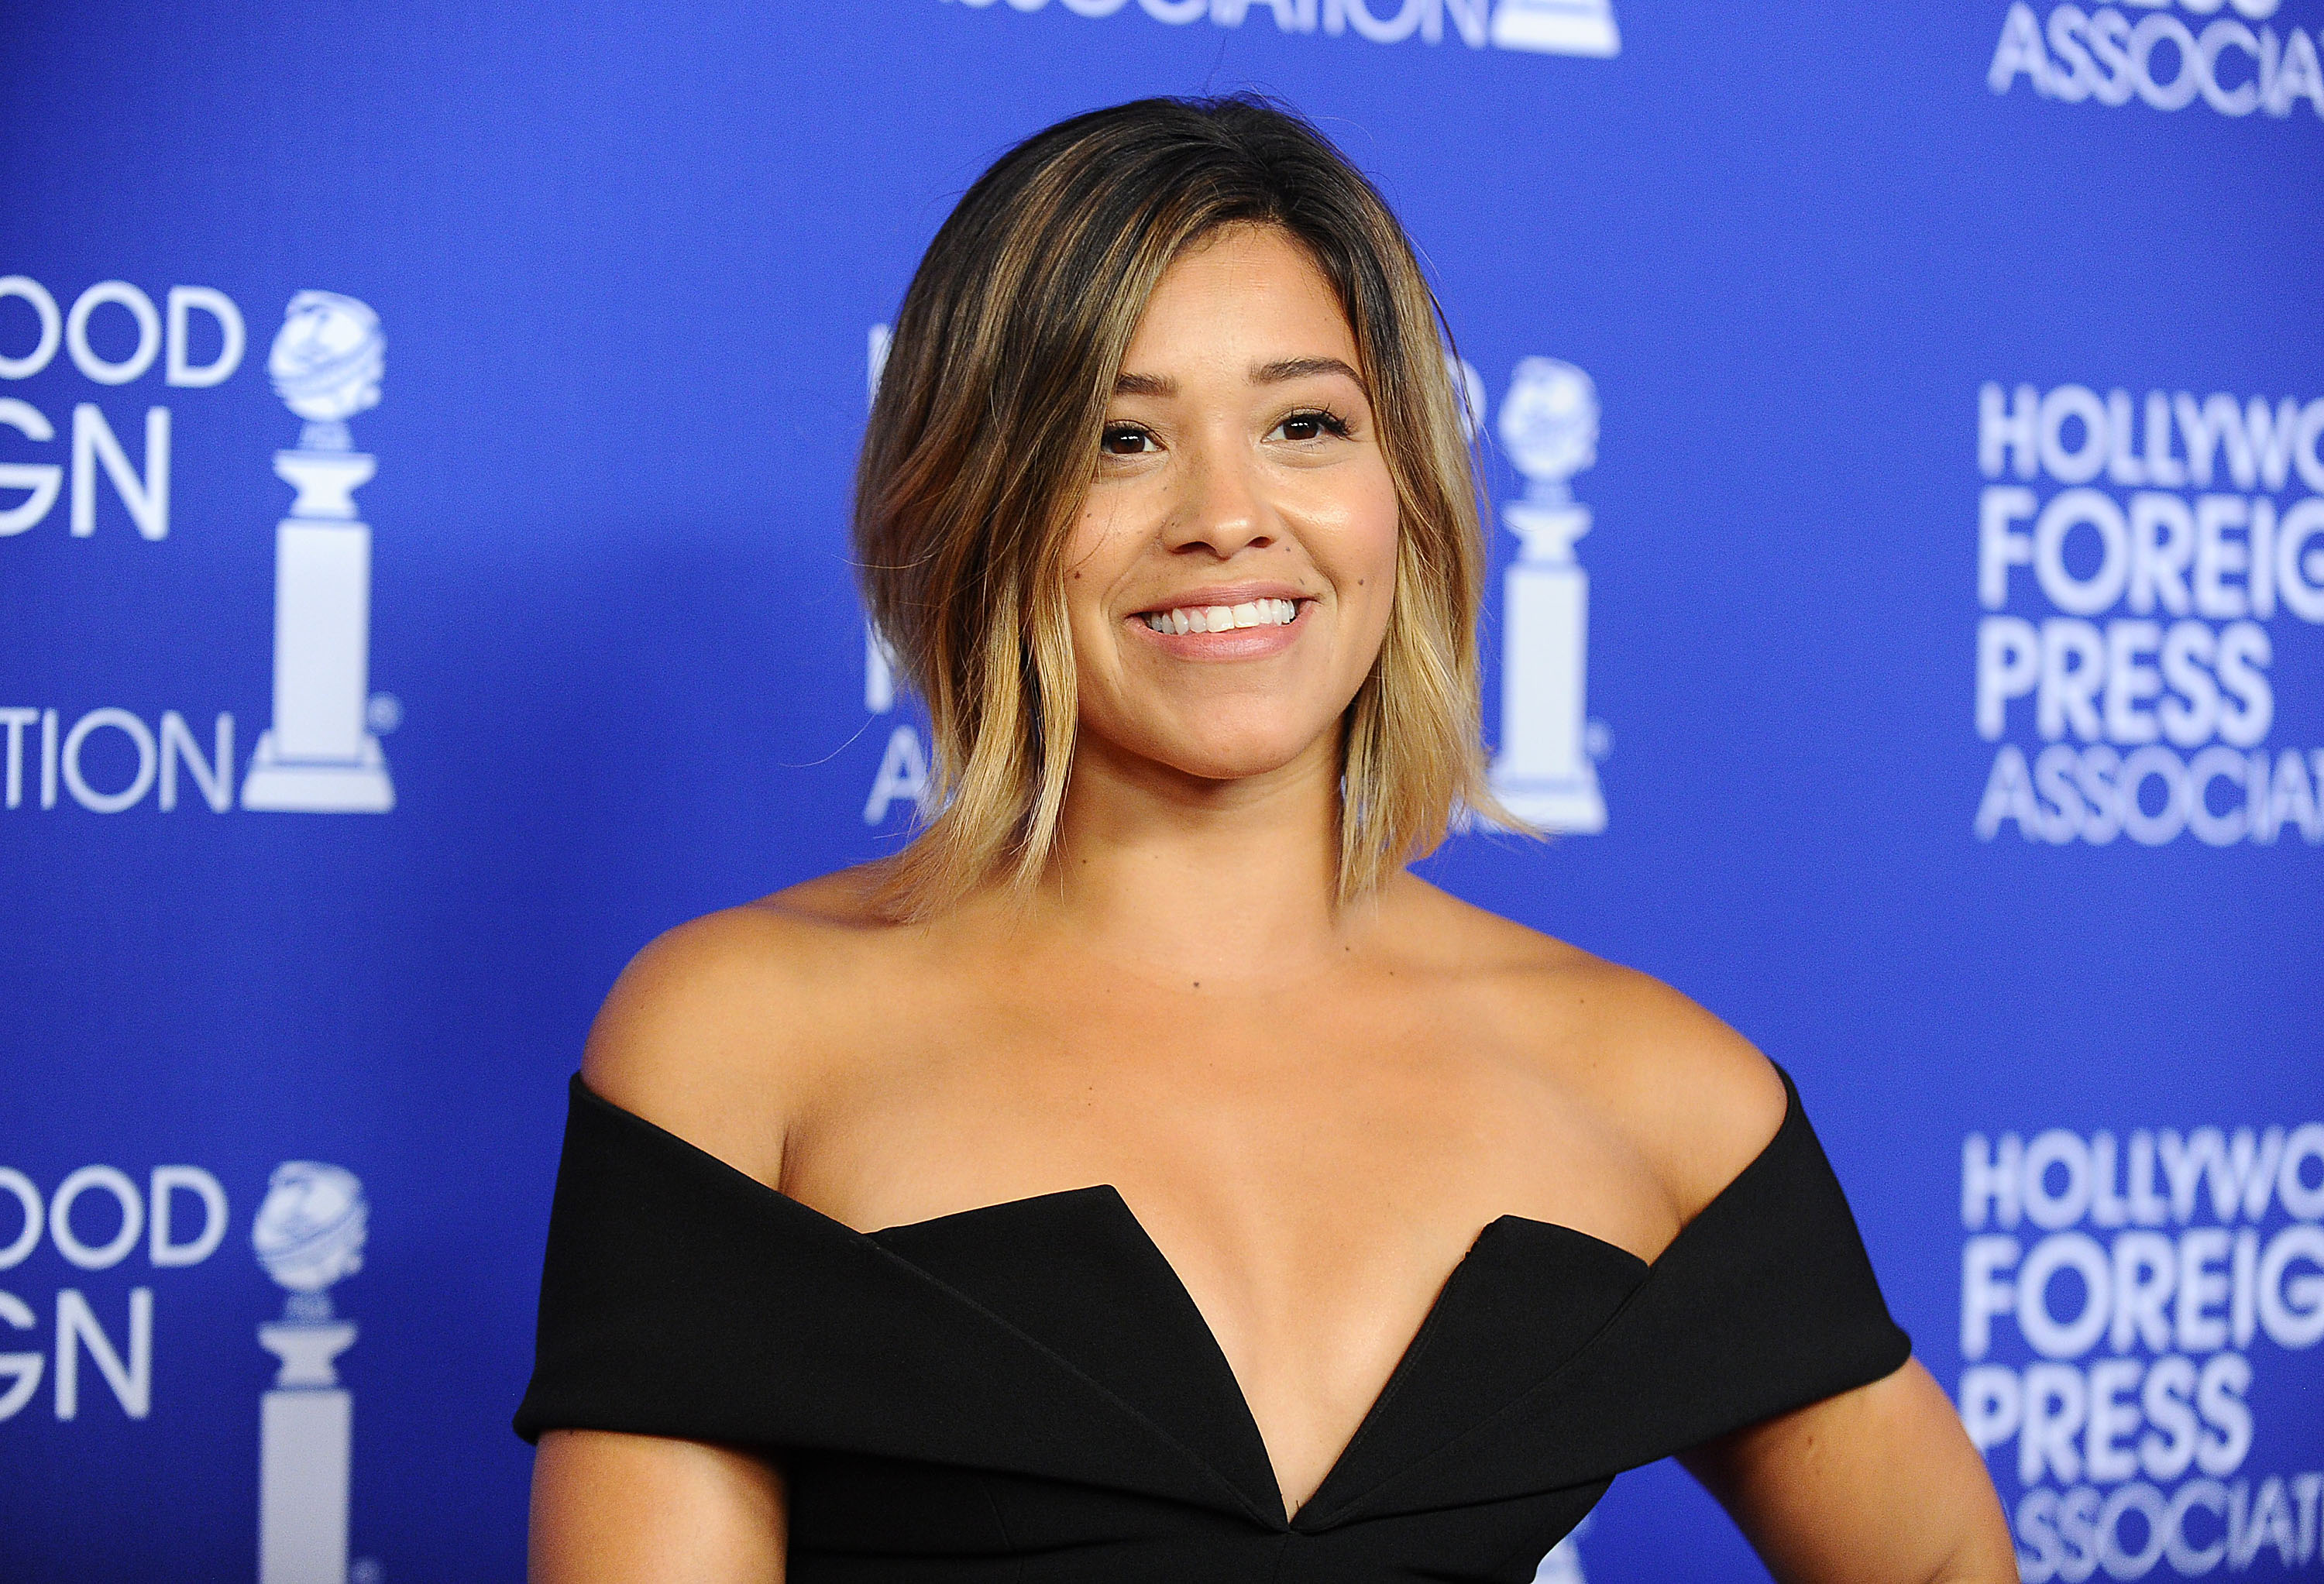 BEVERLY HILLS, CA - AUGUST 05:  Actress Gina Rodriguez attends the Hollywood Foreign Press Association's grants banquet at the Beverly Wilshire Four Seasons Hotel on August 4, 2016 in Beverly Hills, California.  (Photo by Jason LaVeris/FilmMagic)